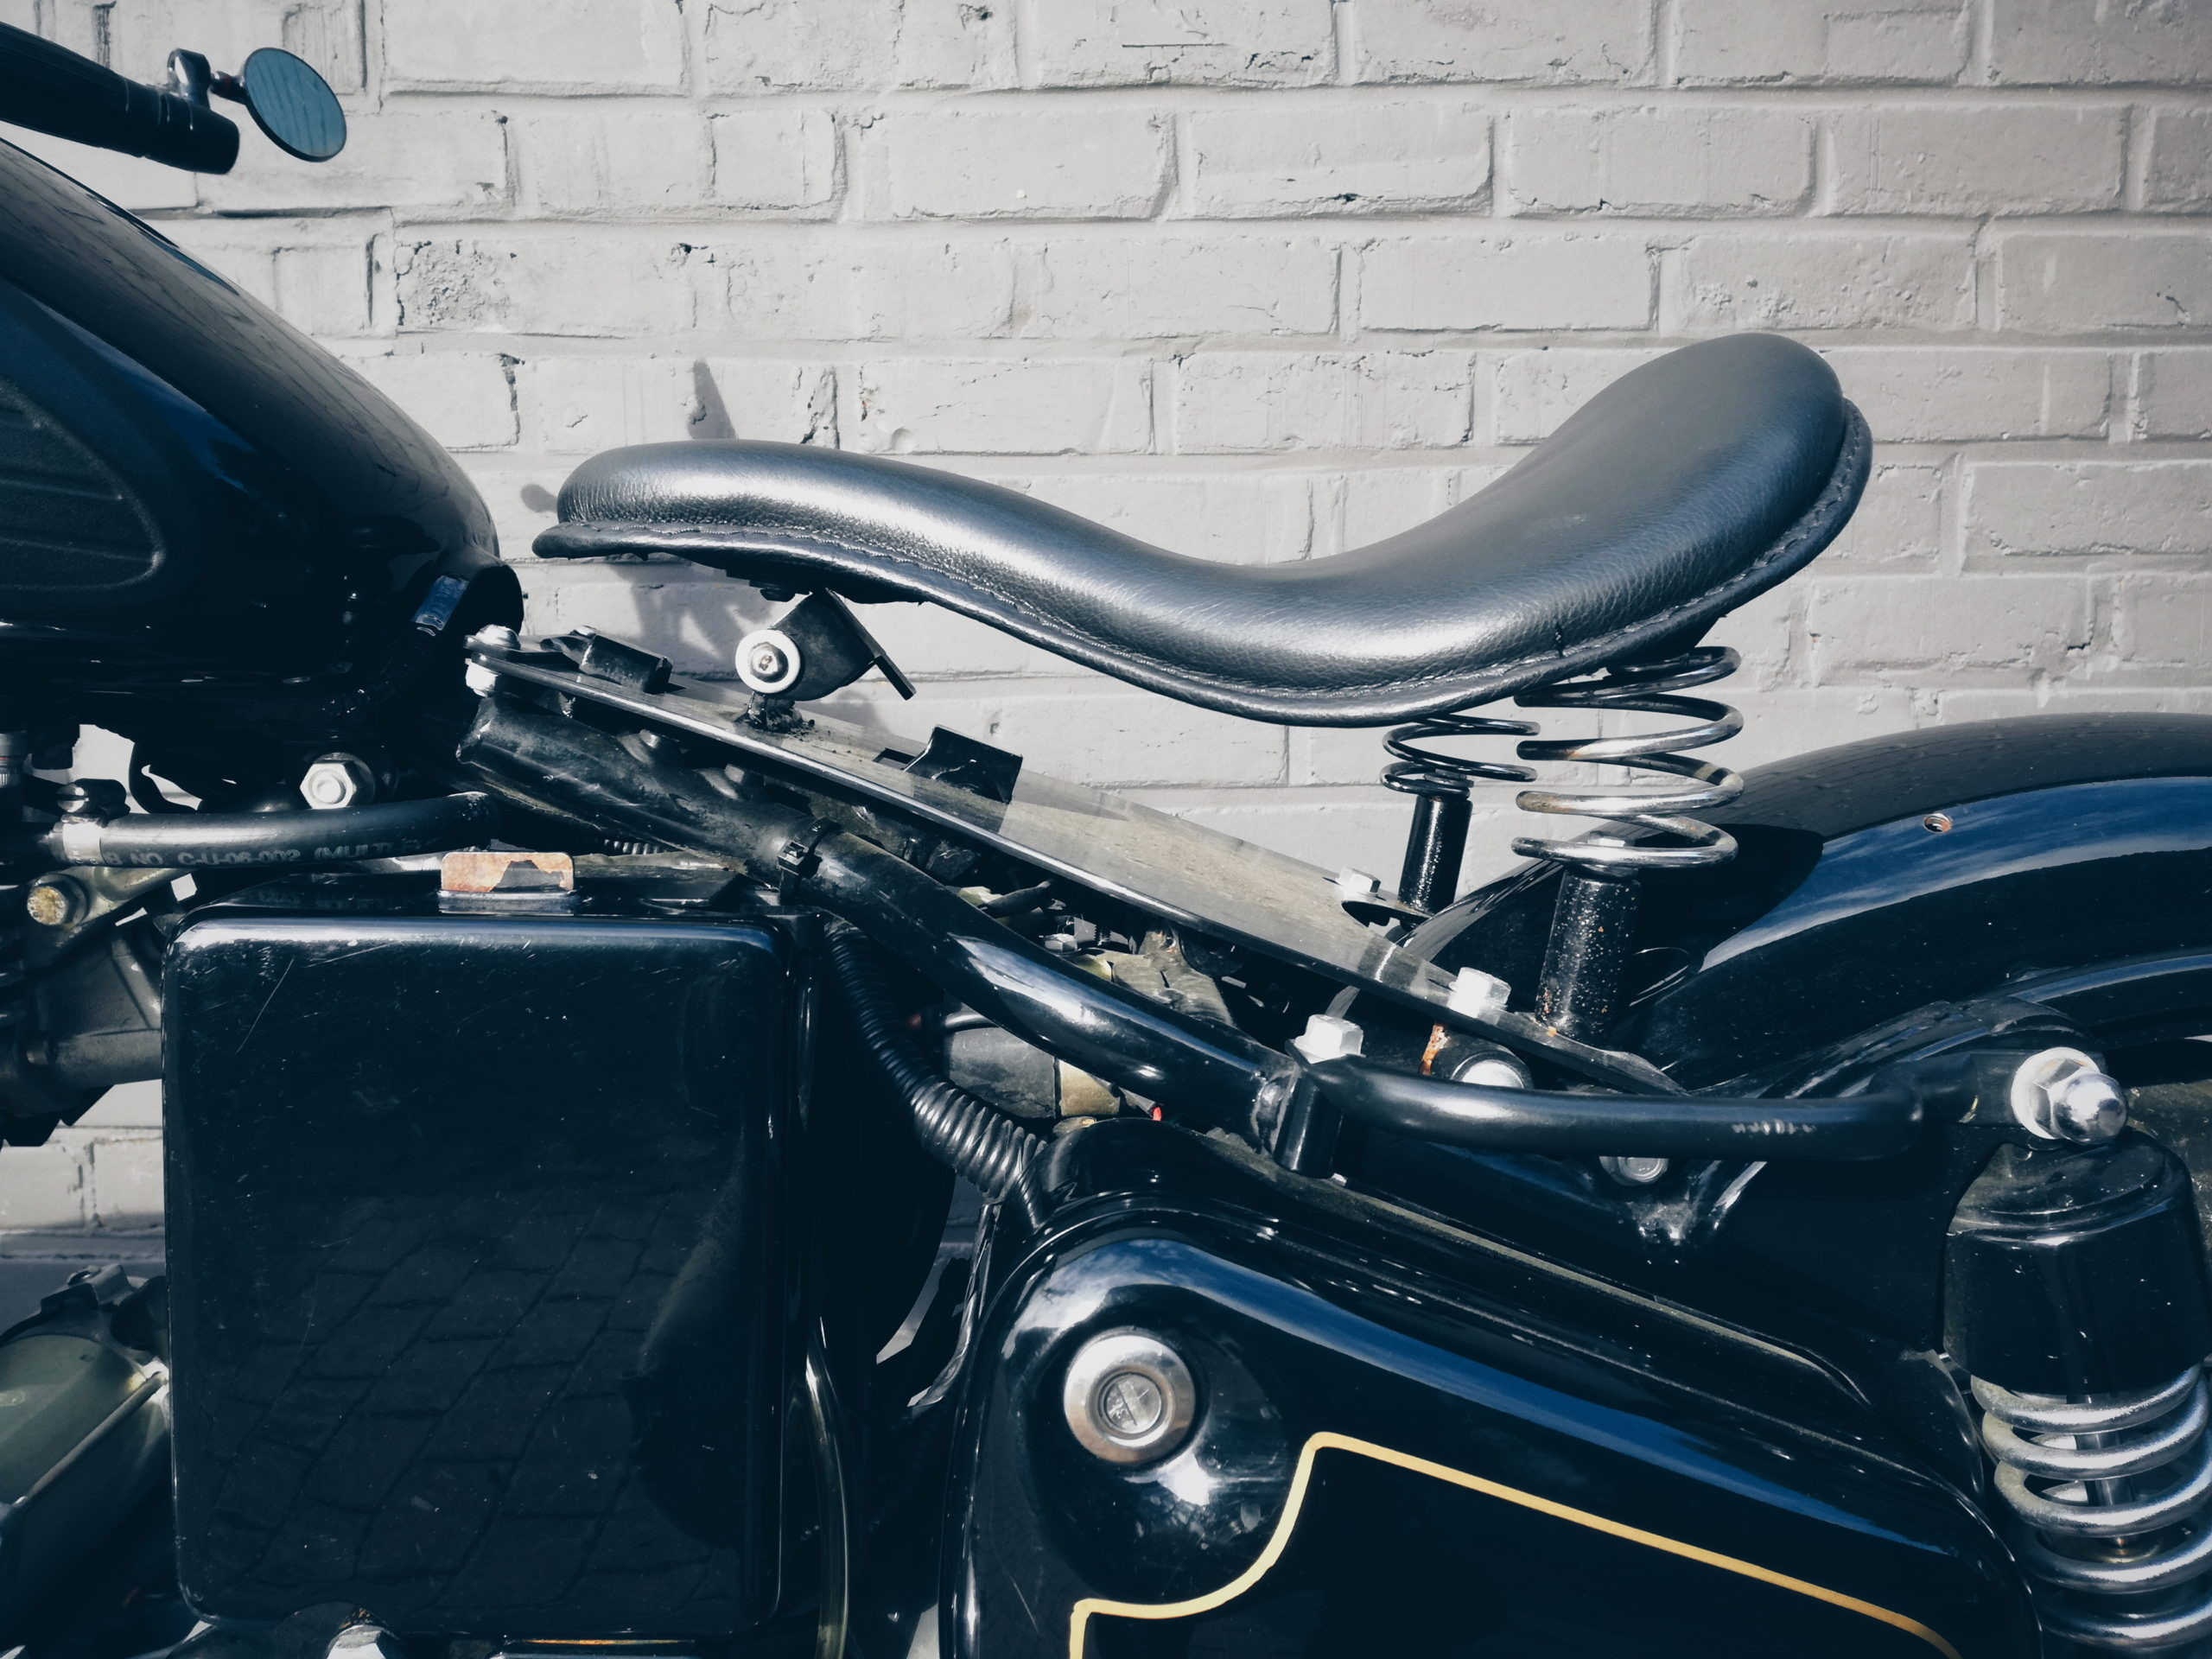 Locotrans Royal Enfield Accessoires